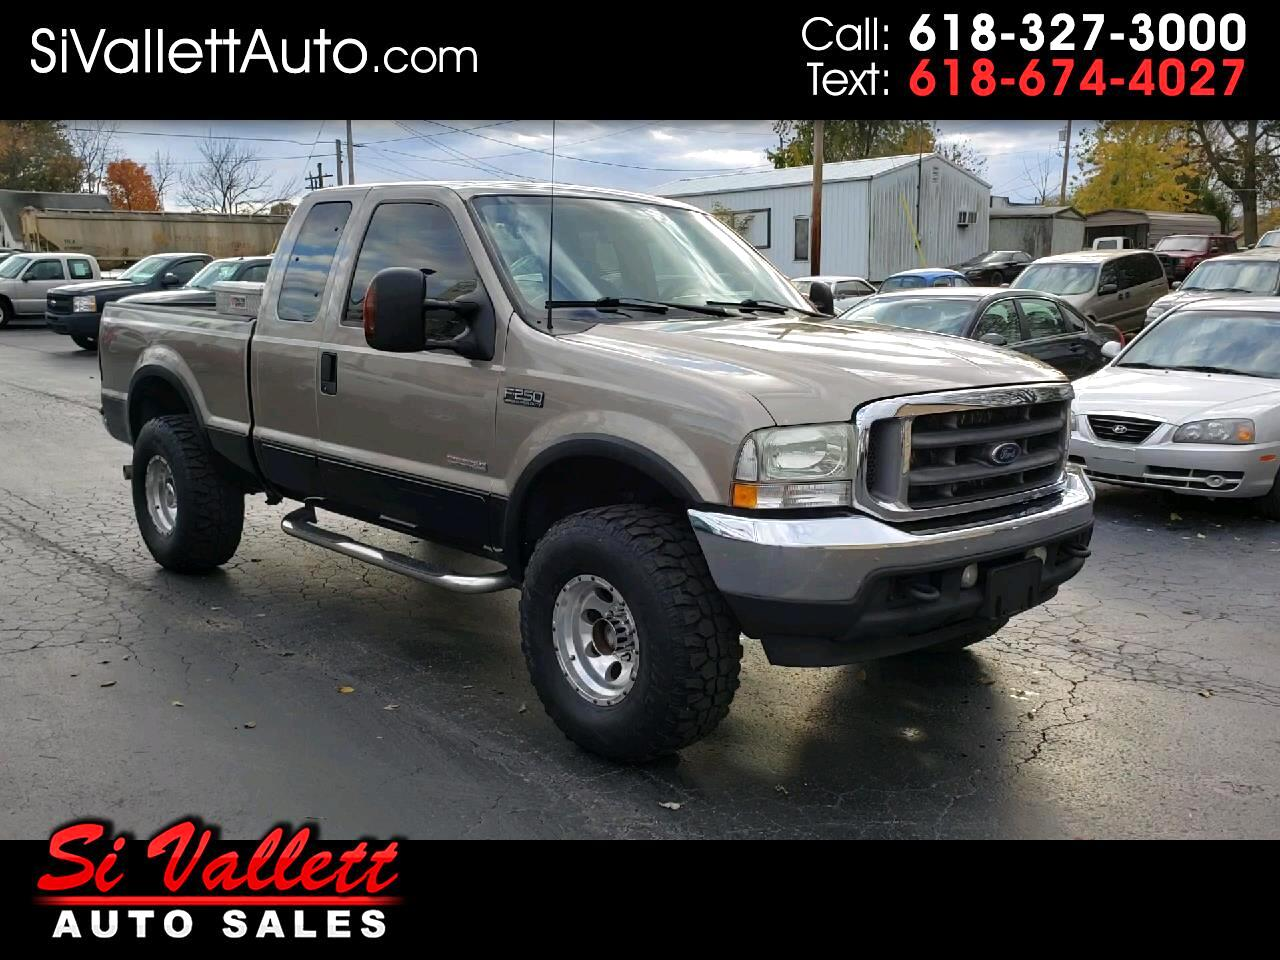 2003 Ford Super Duty F-250 Ex Cab Lariet Shortbed 4X4